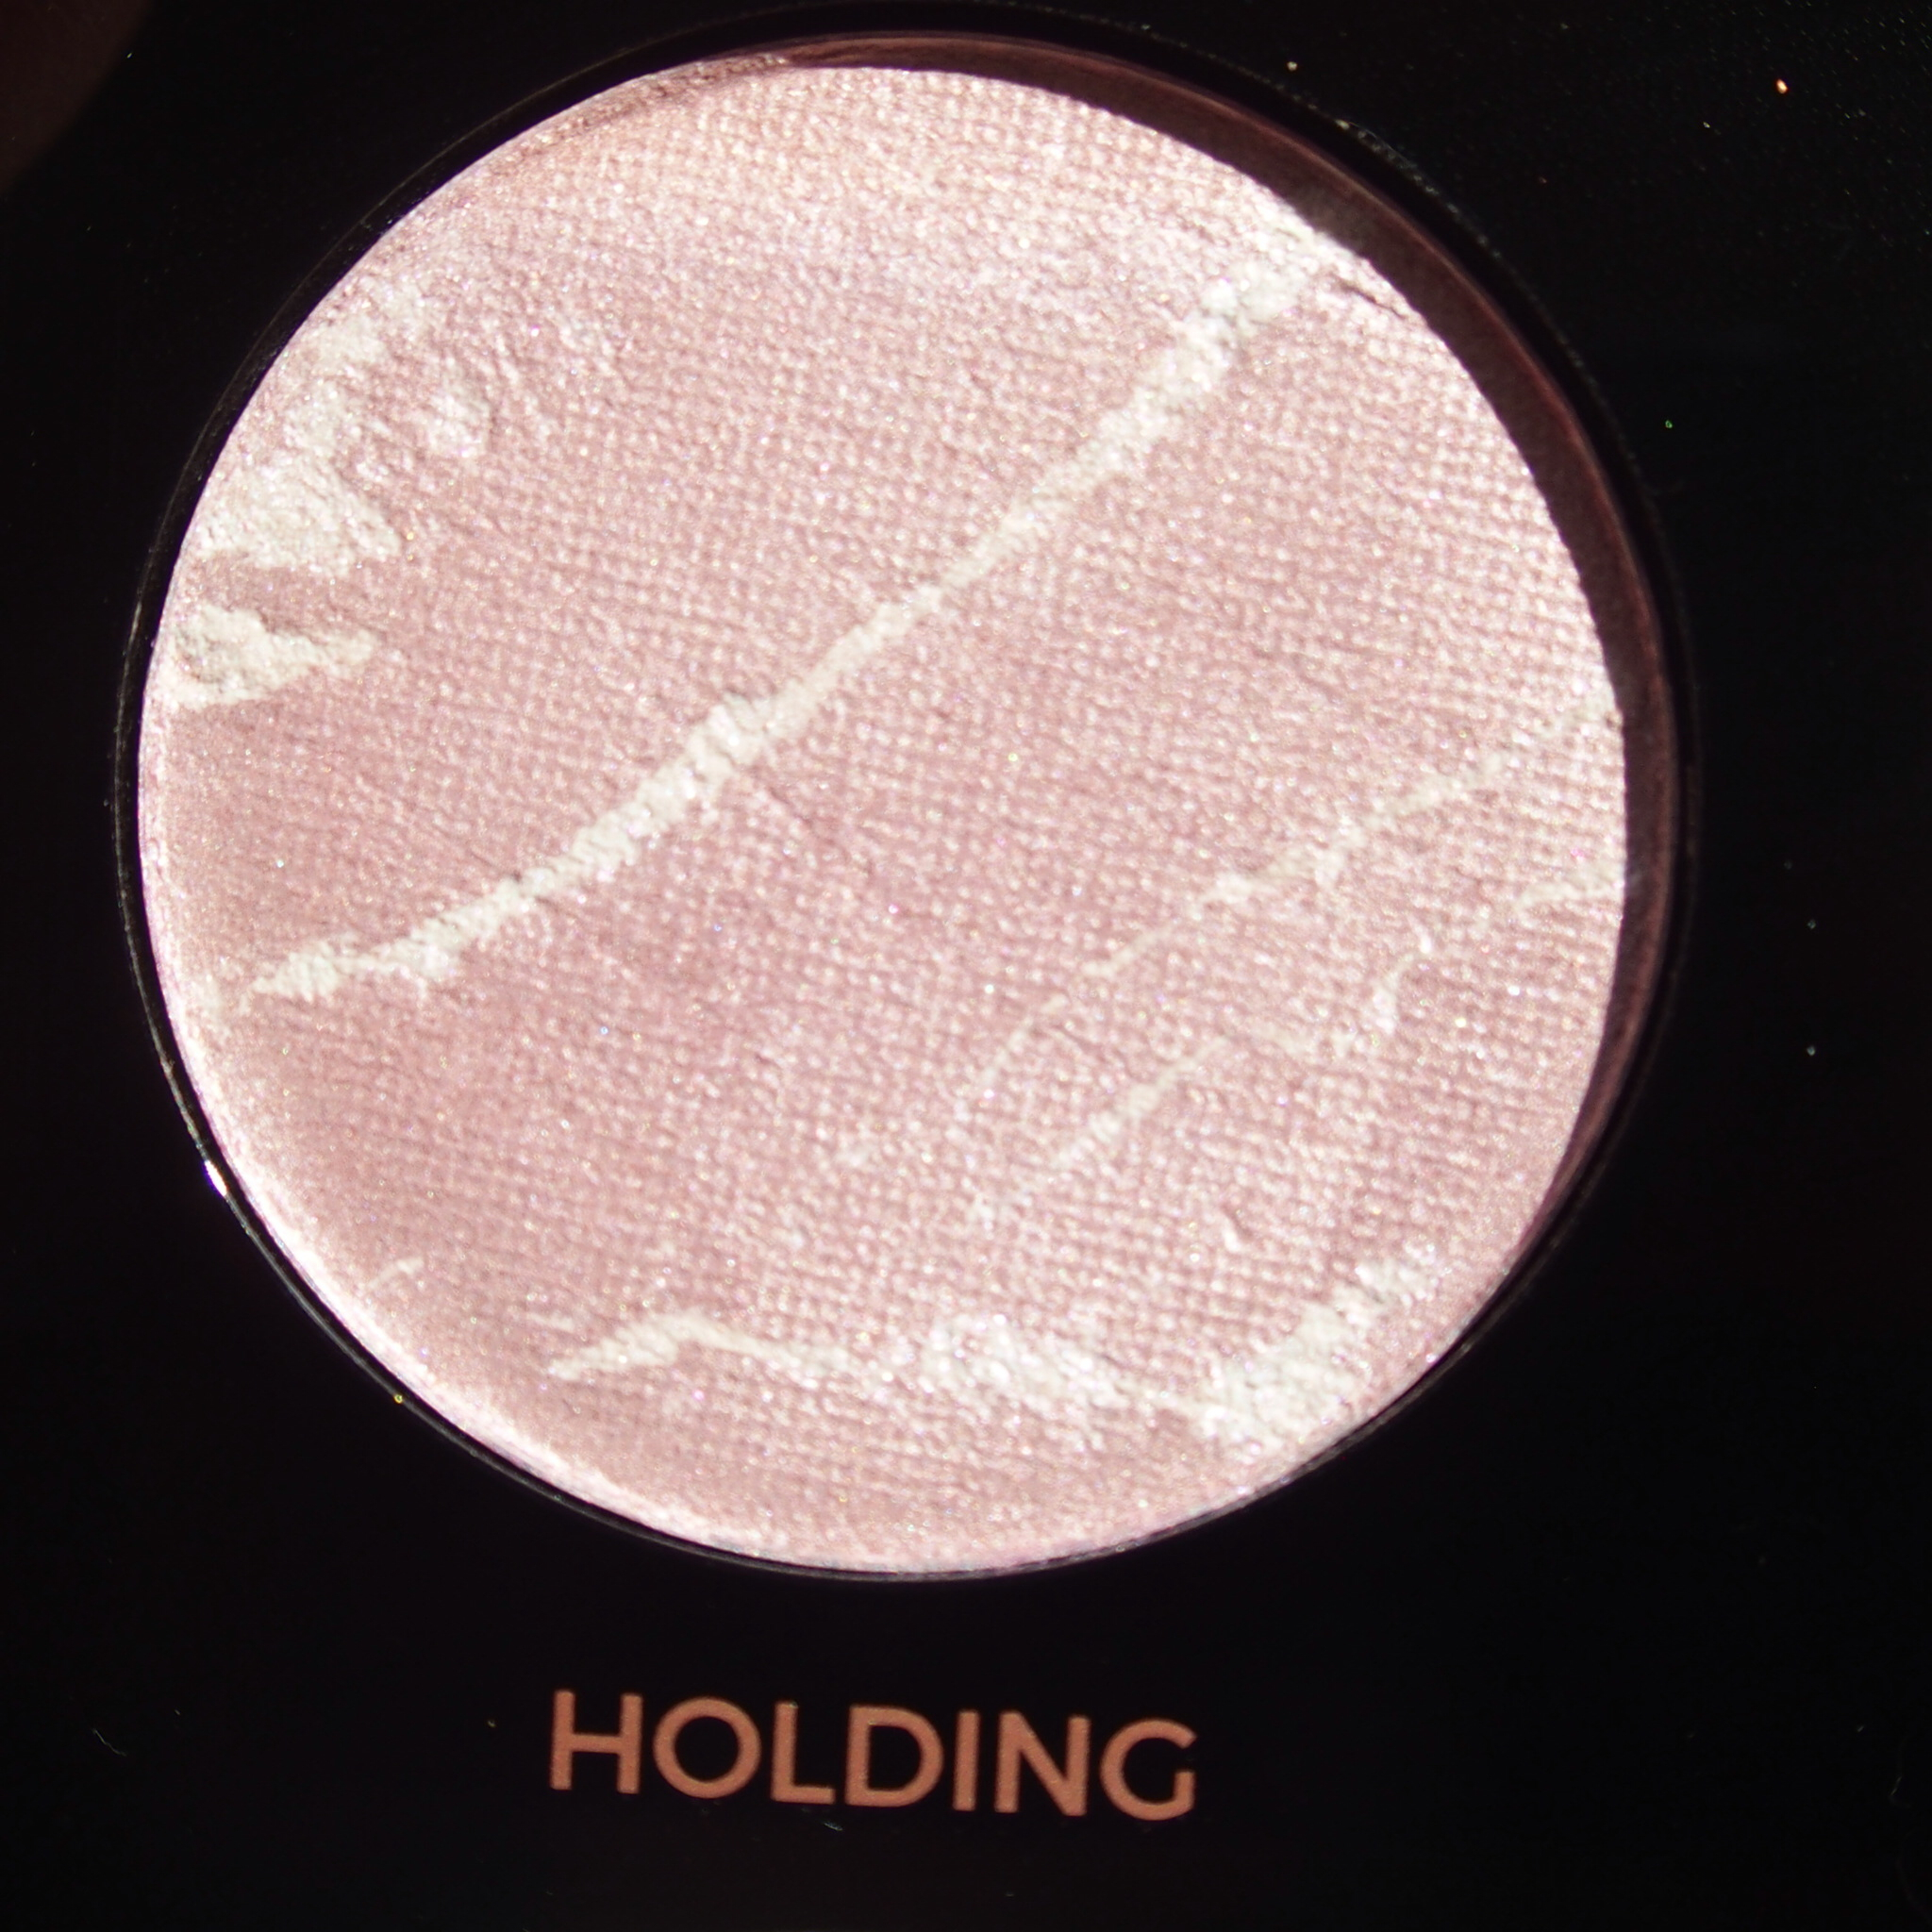 Makeup Revolution Pro HD Amplified Get Baked Palette swatches - Holding